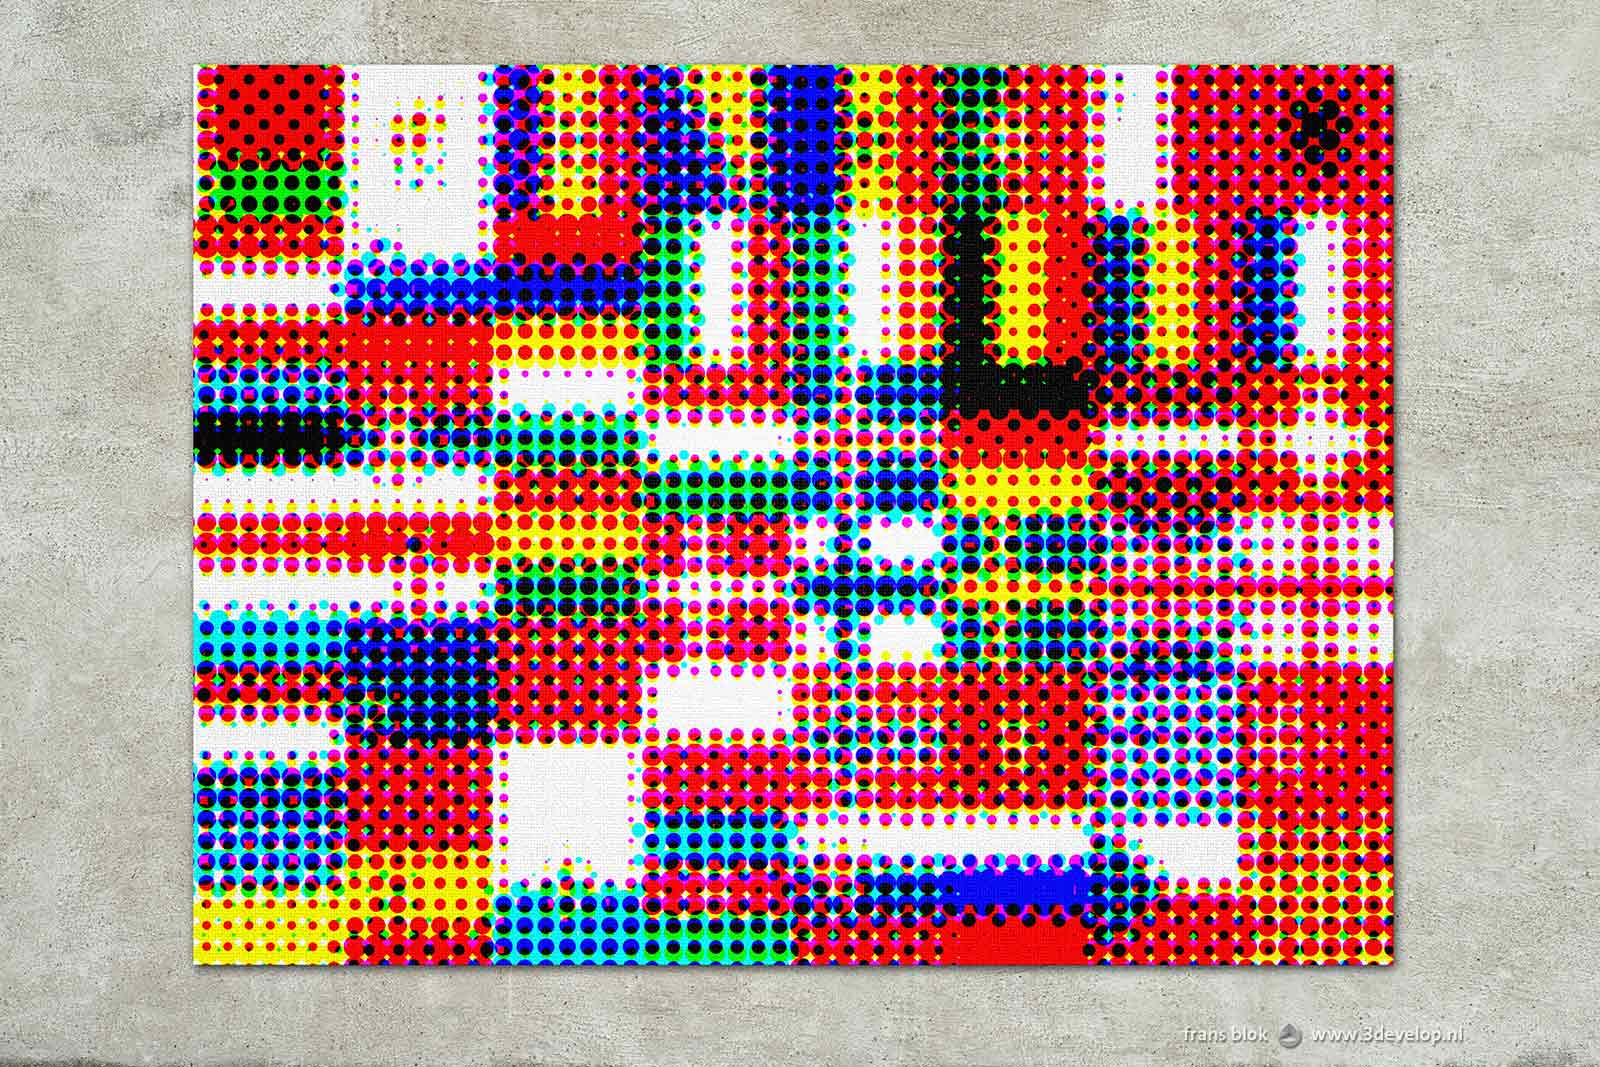 halftone patterned version of a composition of 48 European flags